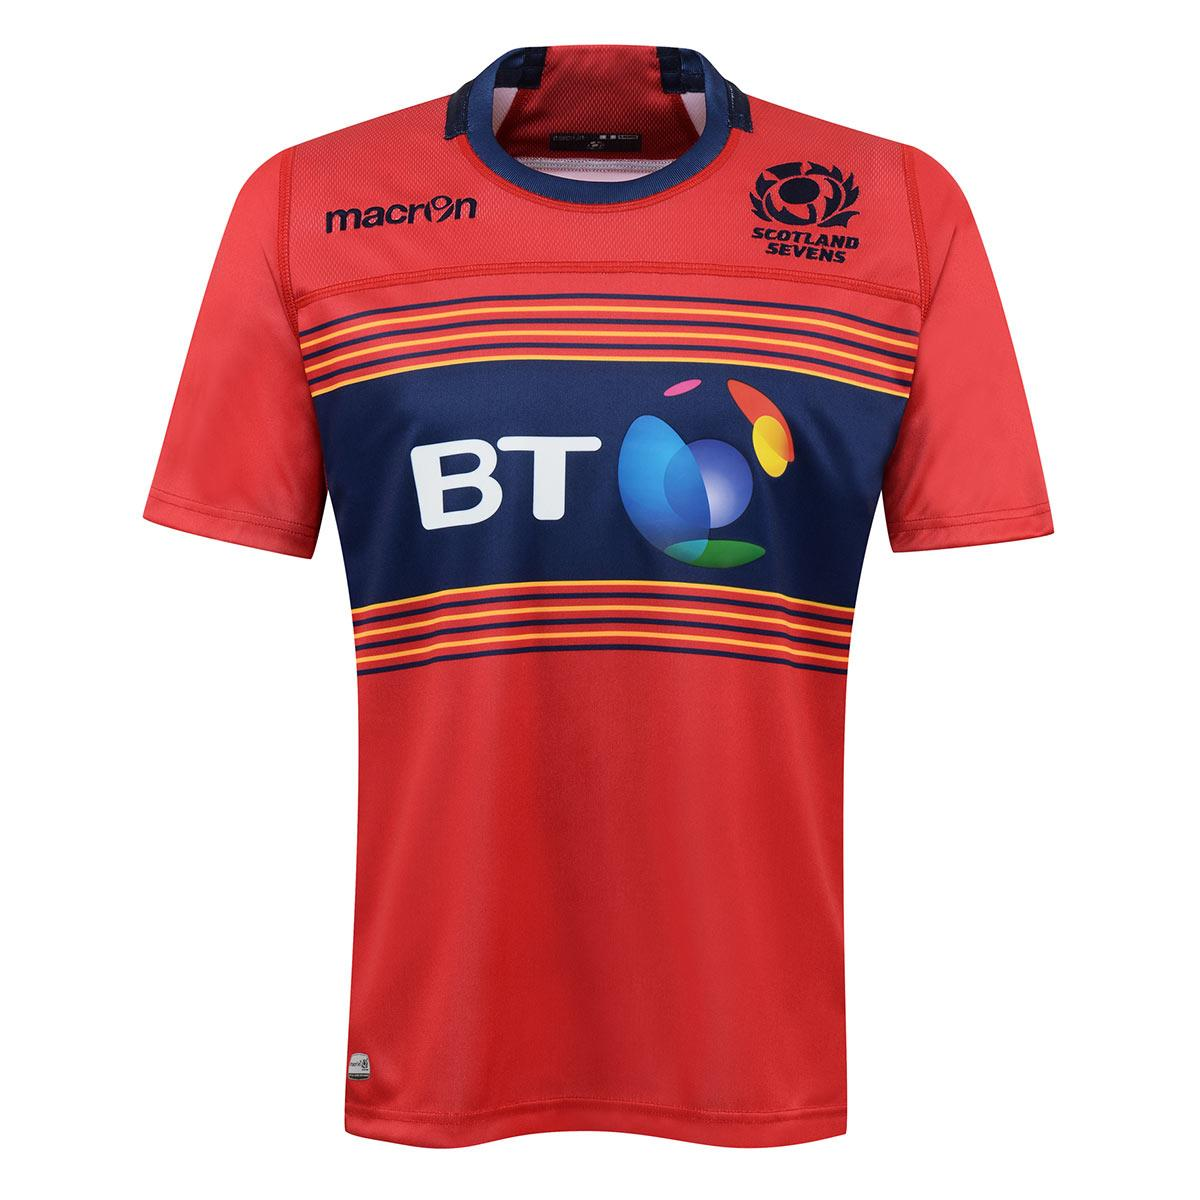 e363dc6884a 2017 Official Scotland Rugby 7s Shirt - Alternate | rugbystore